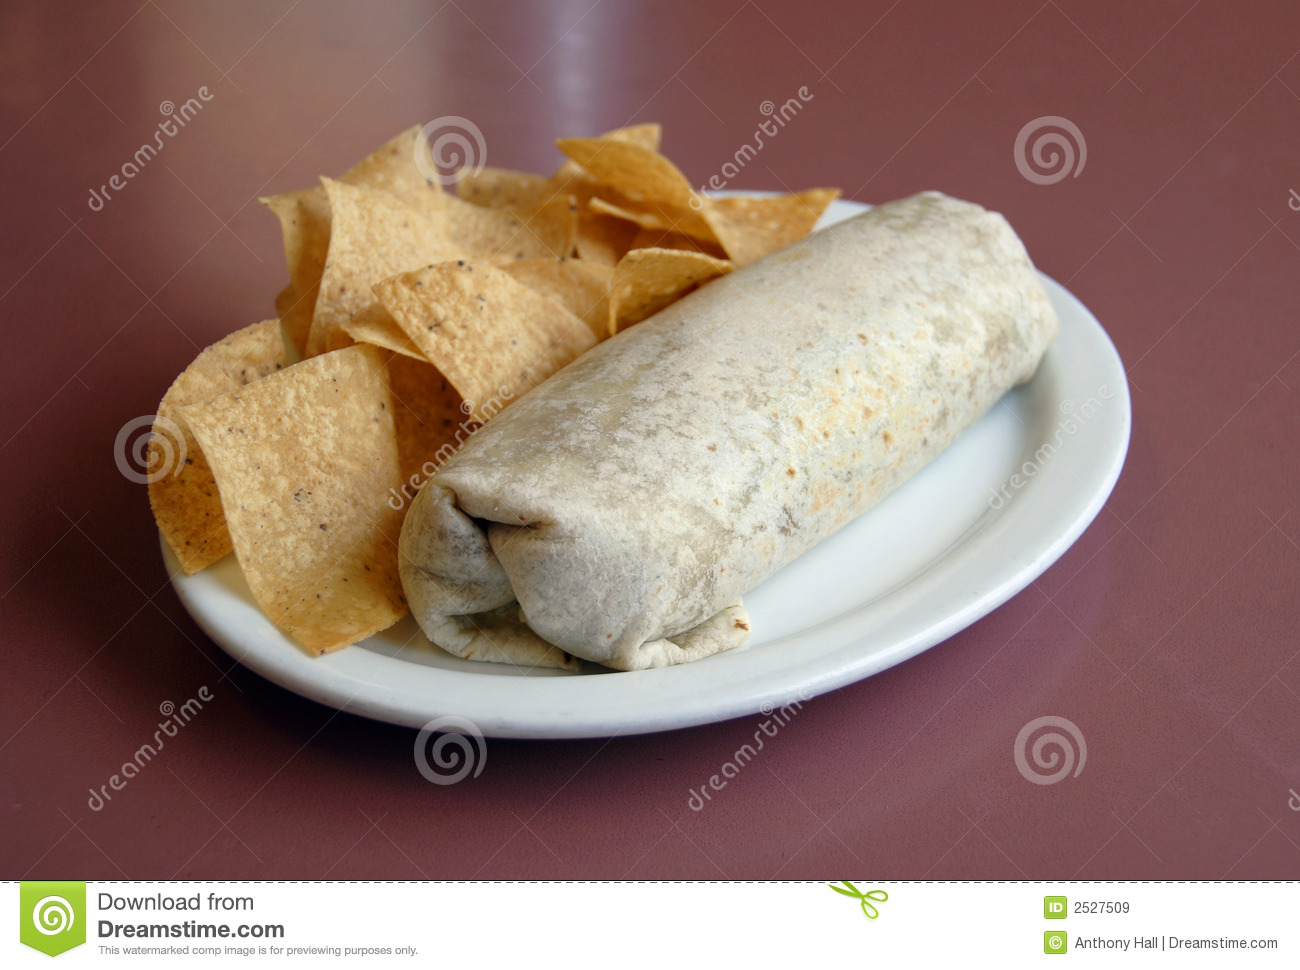 Mexican Food - Burrito & chips